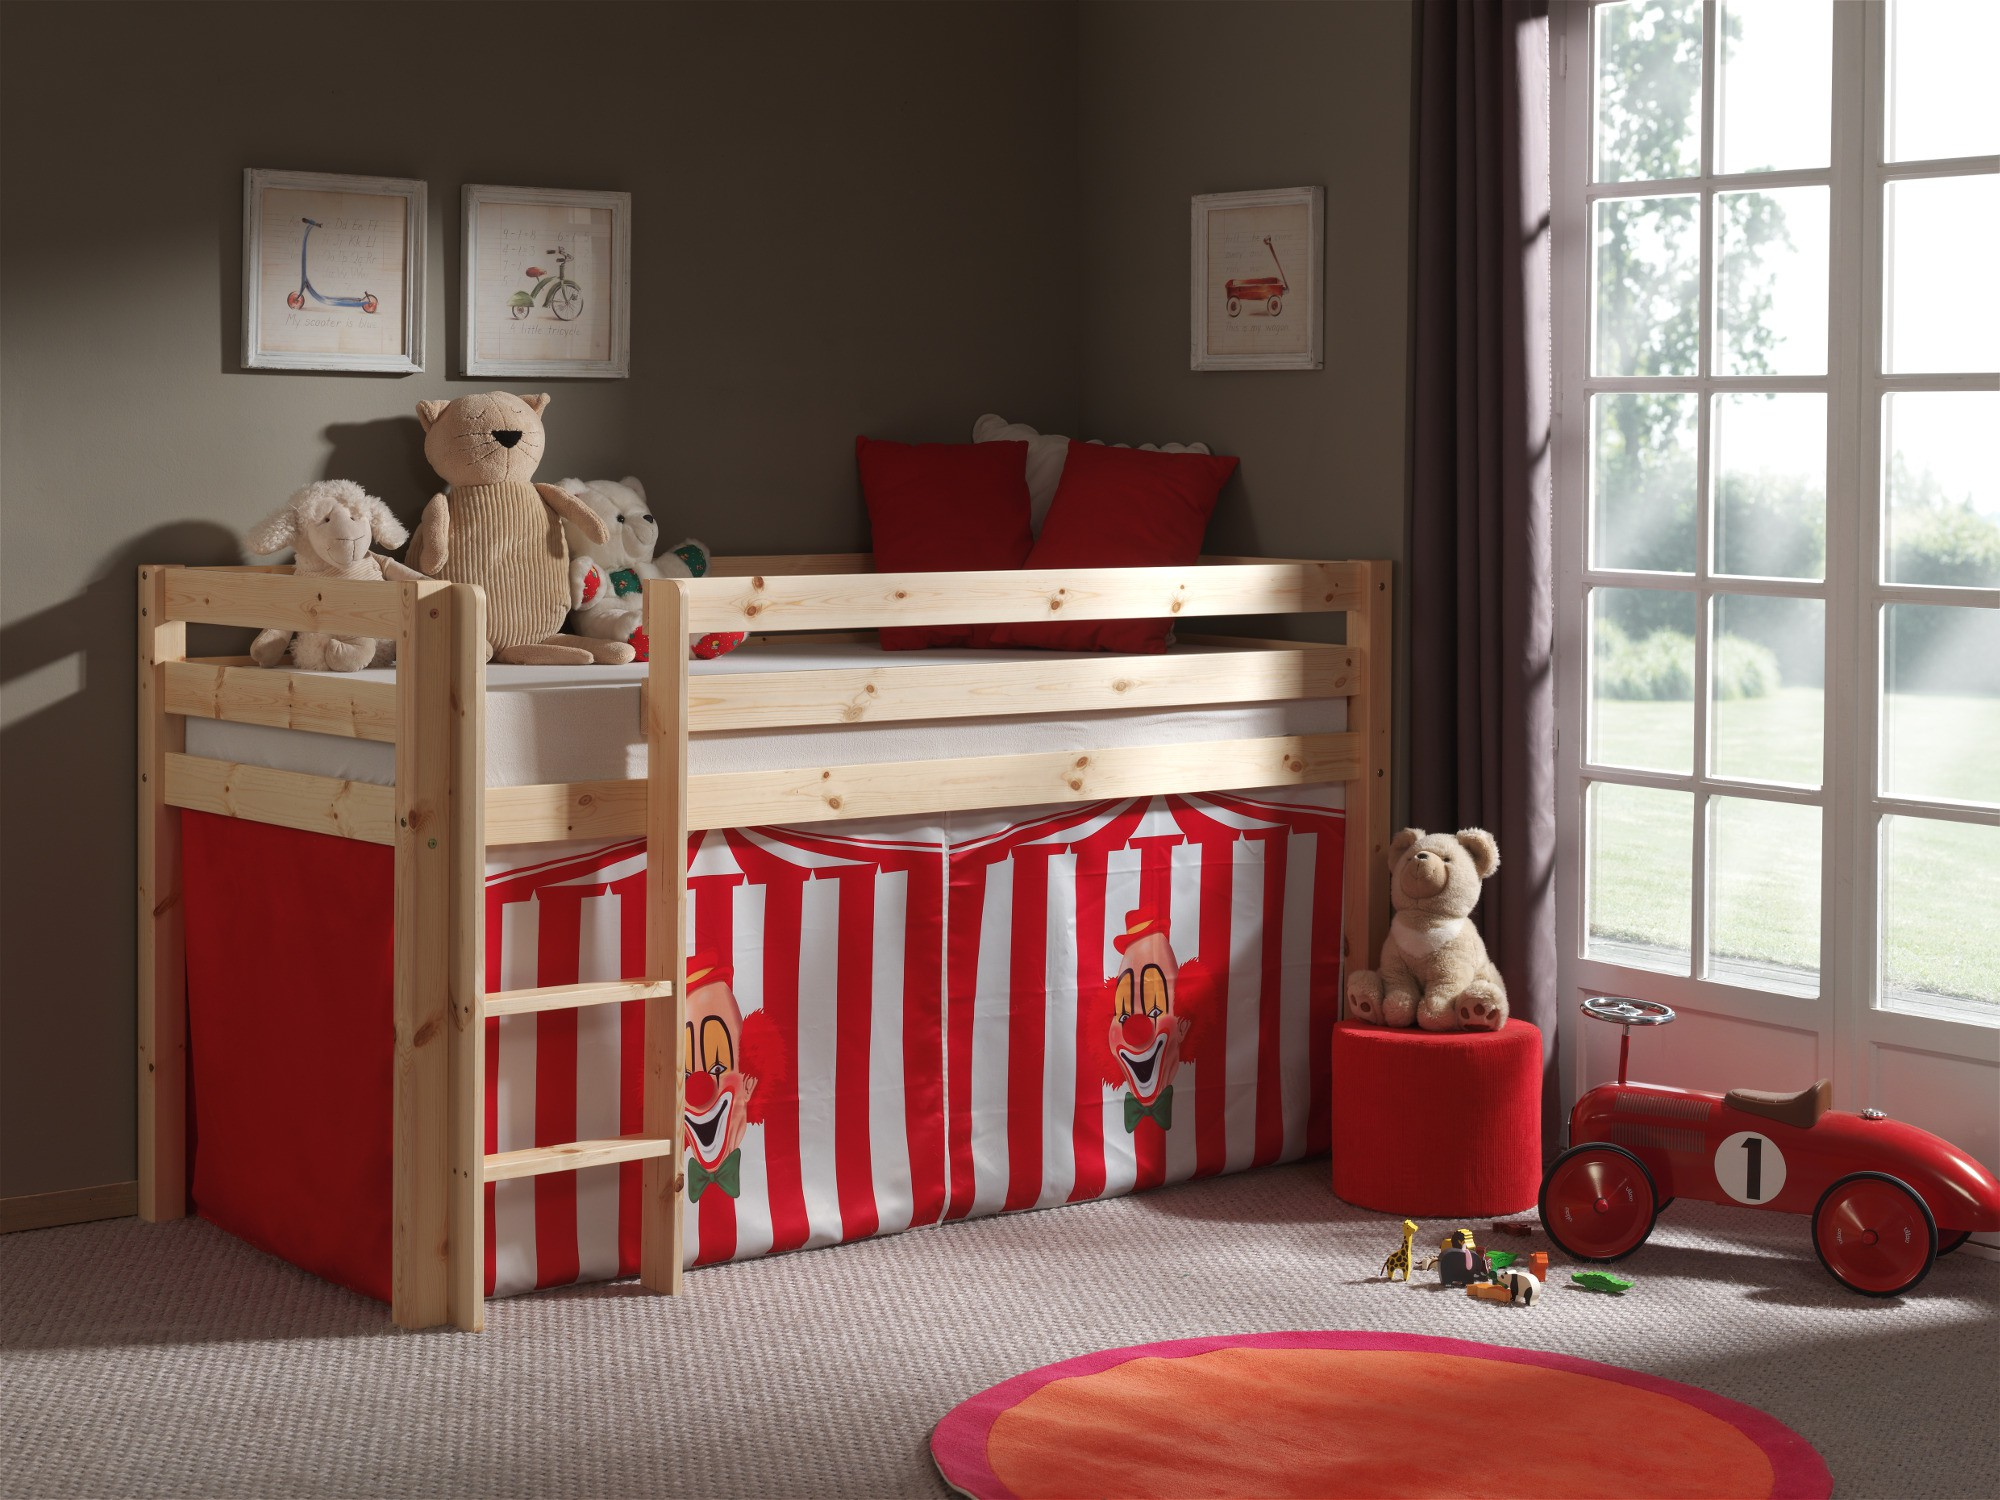 spielbett pino zirkus liegefl che 90 x 200 cm kiefer massiv kinder jugendzimmer pino. Black Bedroom Furniture Sets. Home Design Ideas